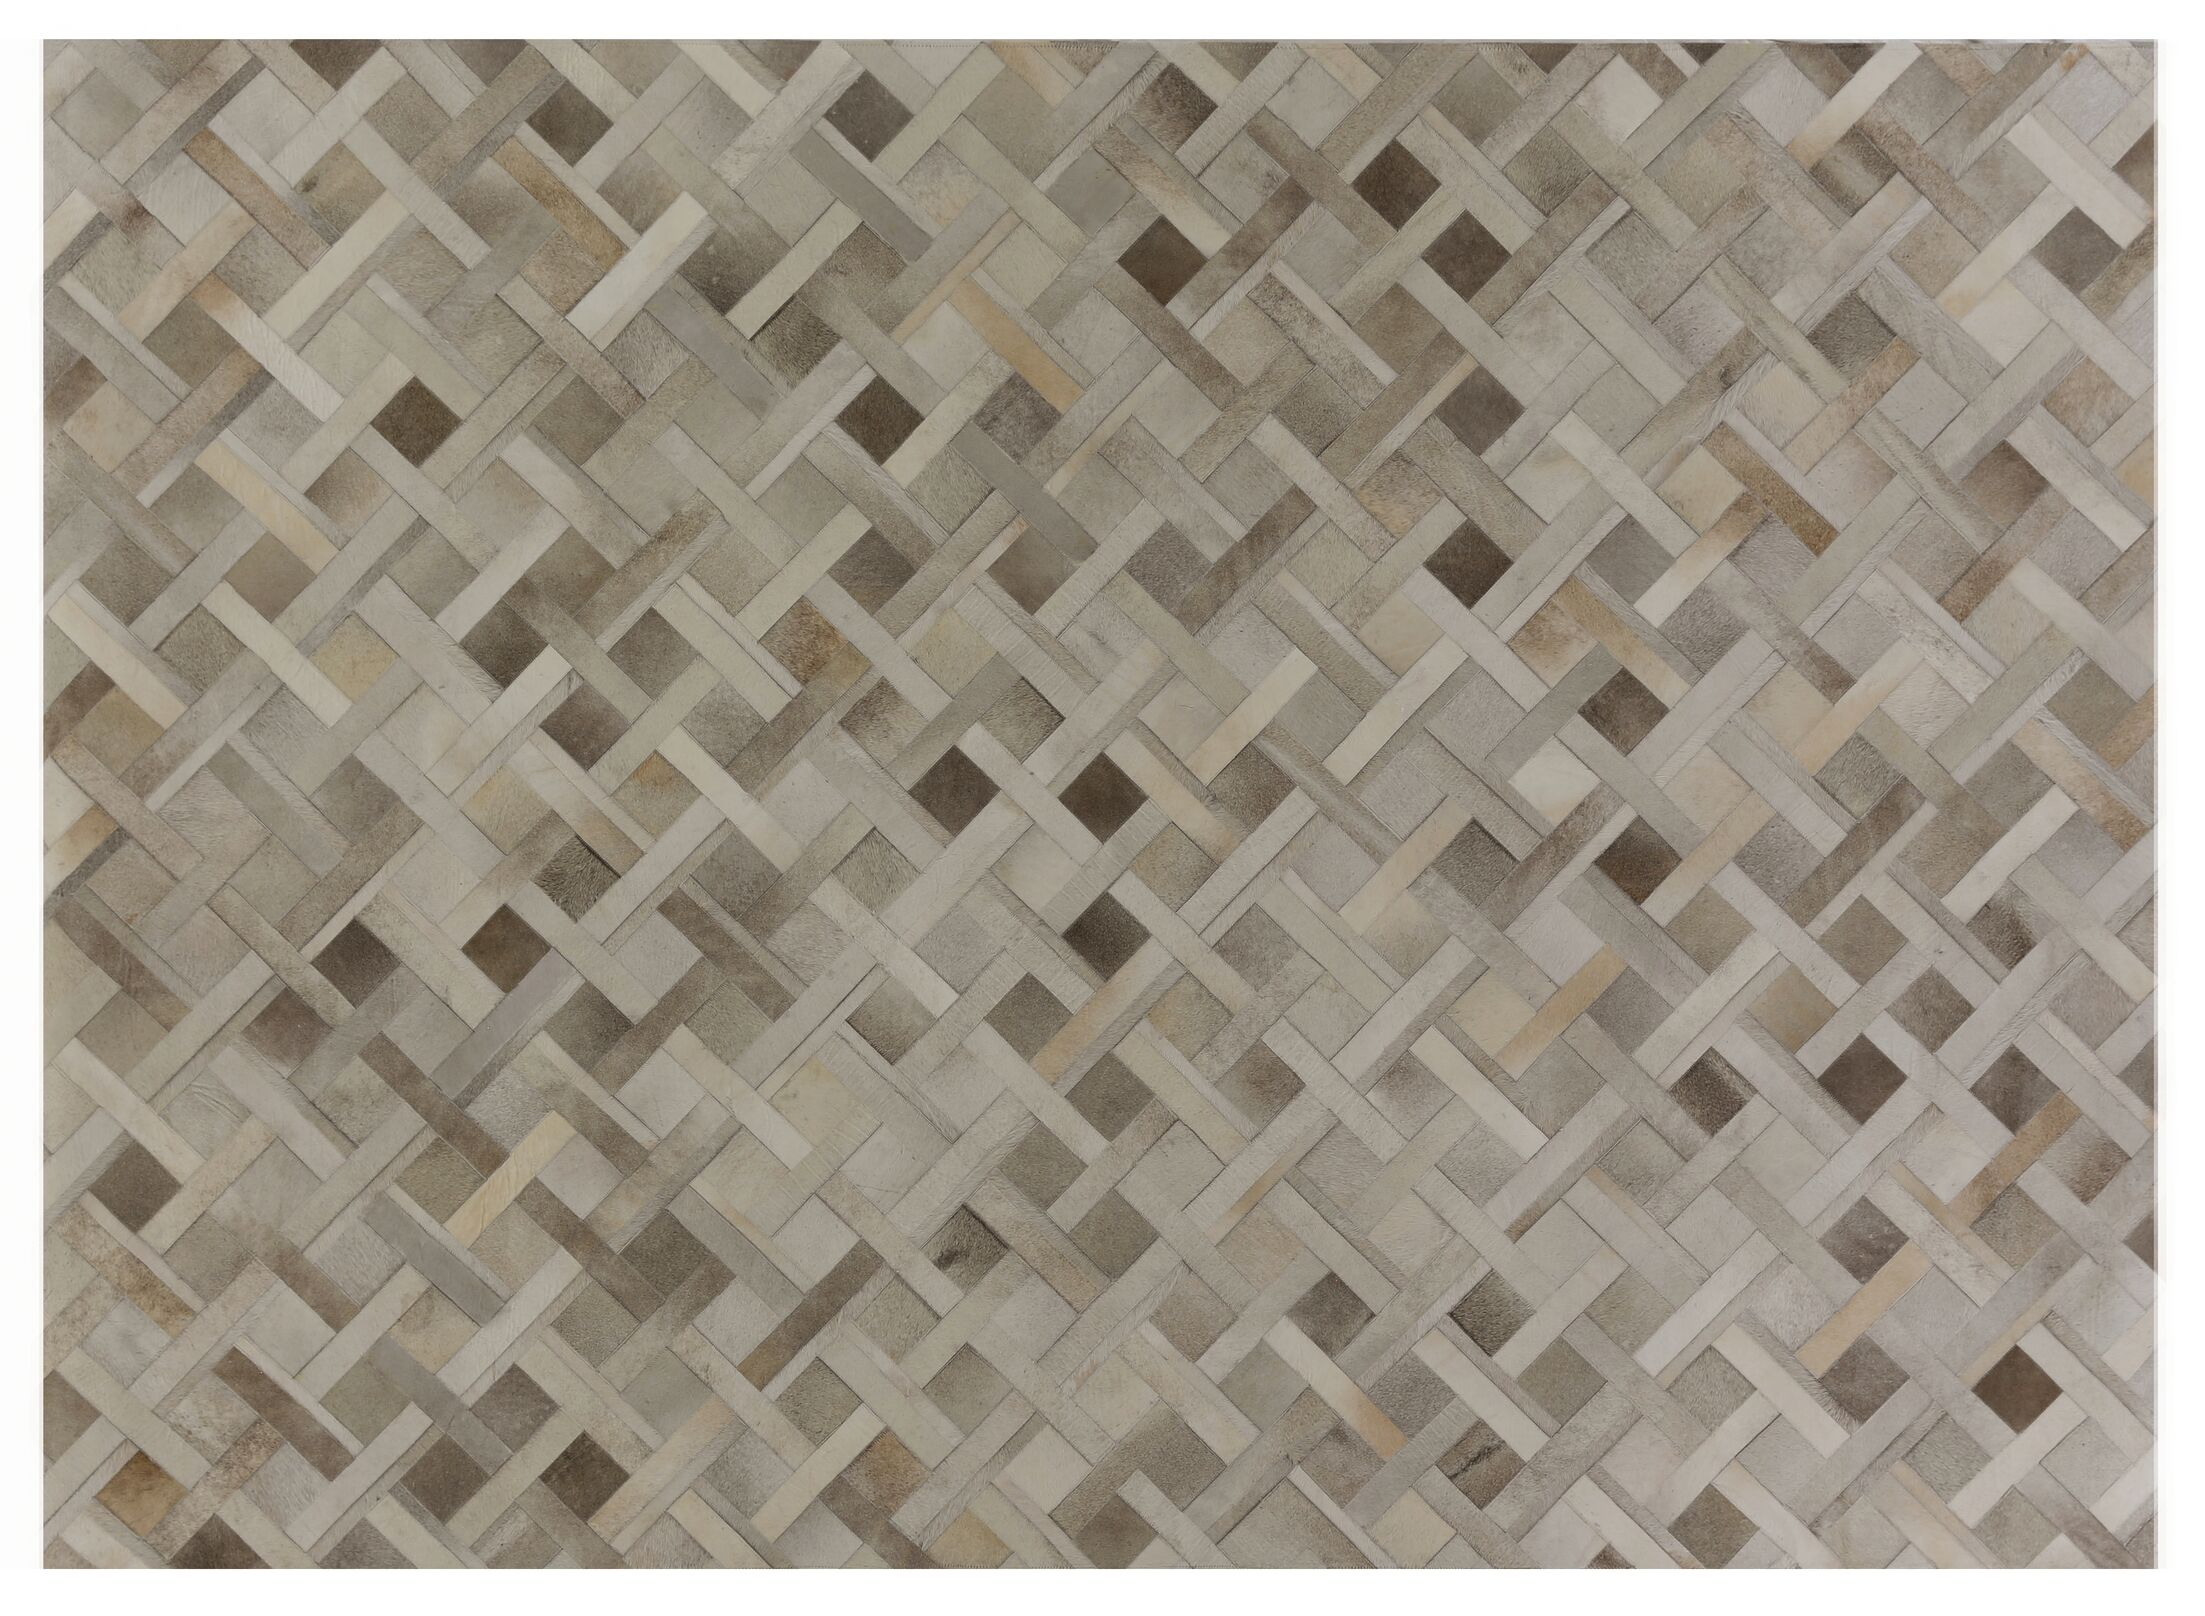 Natural Hide Hand-Tufted Cowhide Silver/Ivory Area Rug Rug Size: Rectangle 5' x 8'